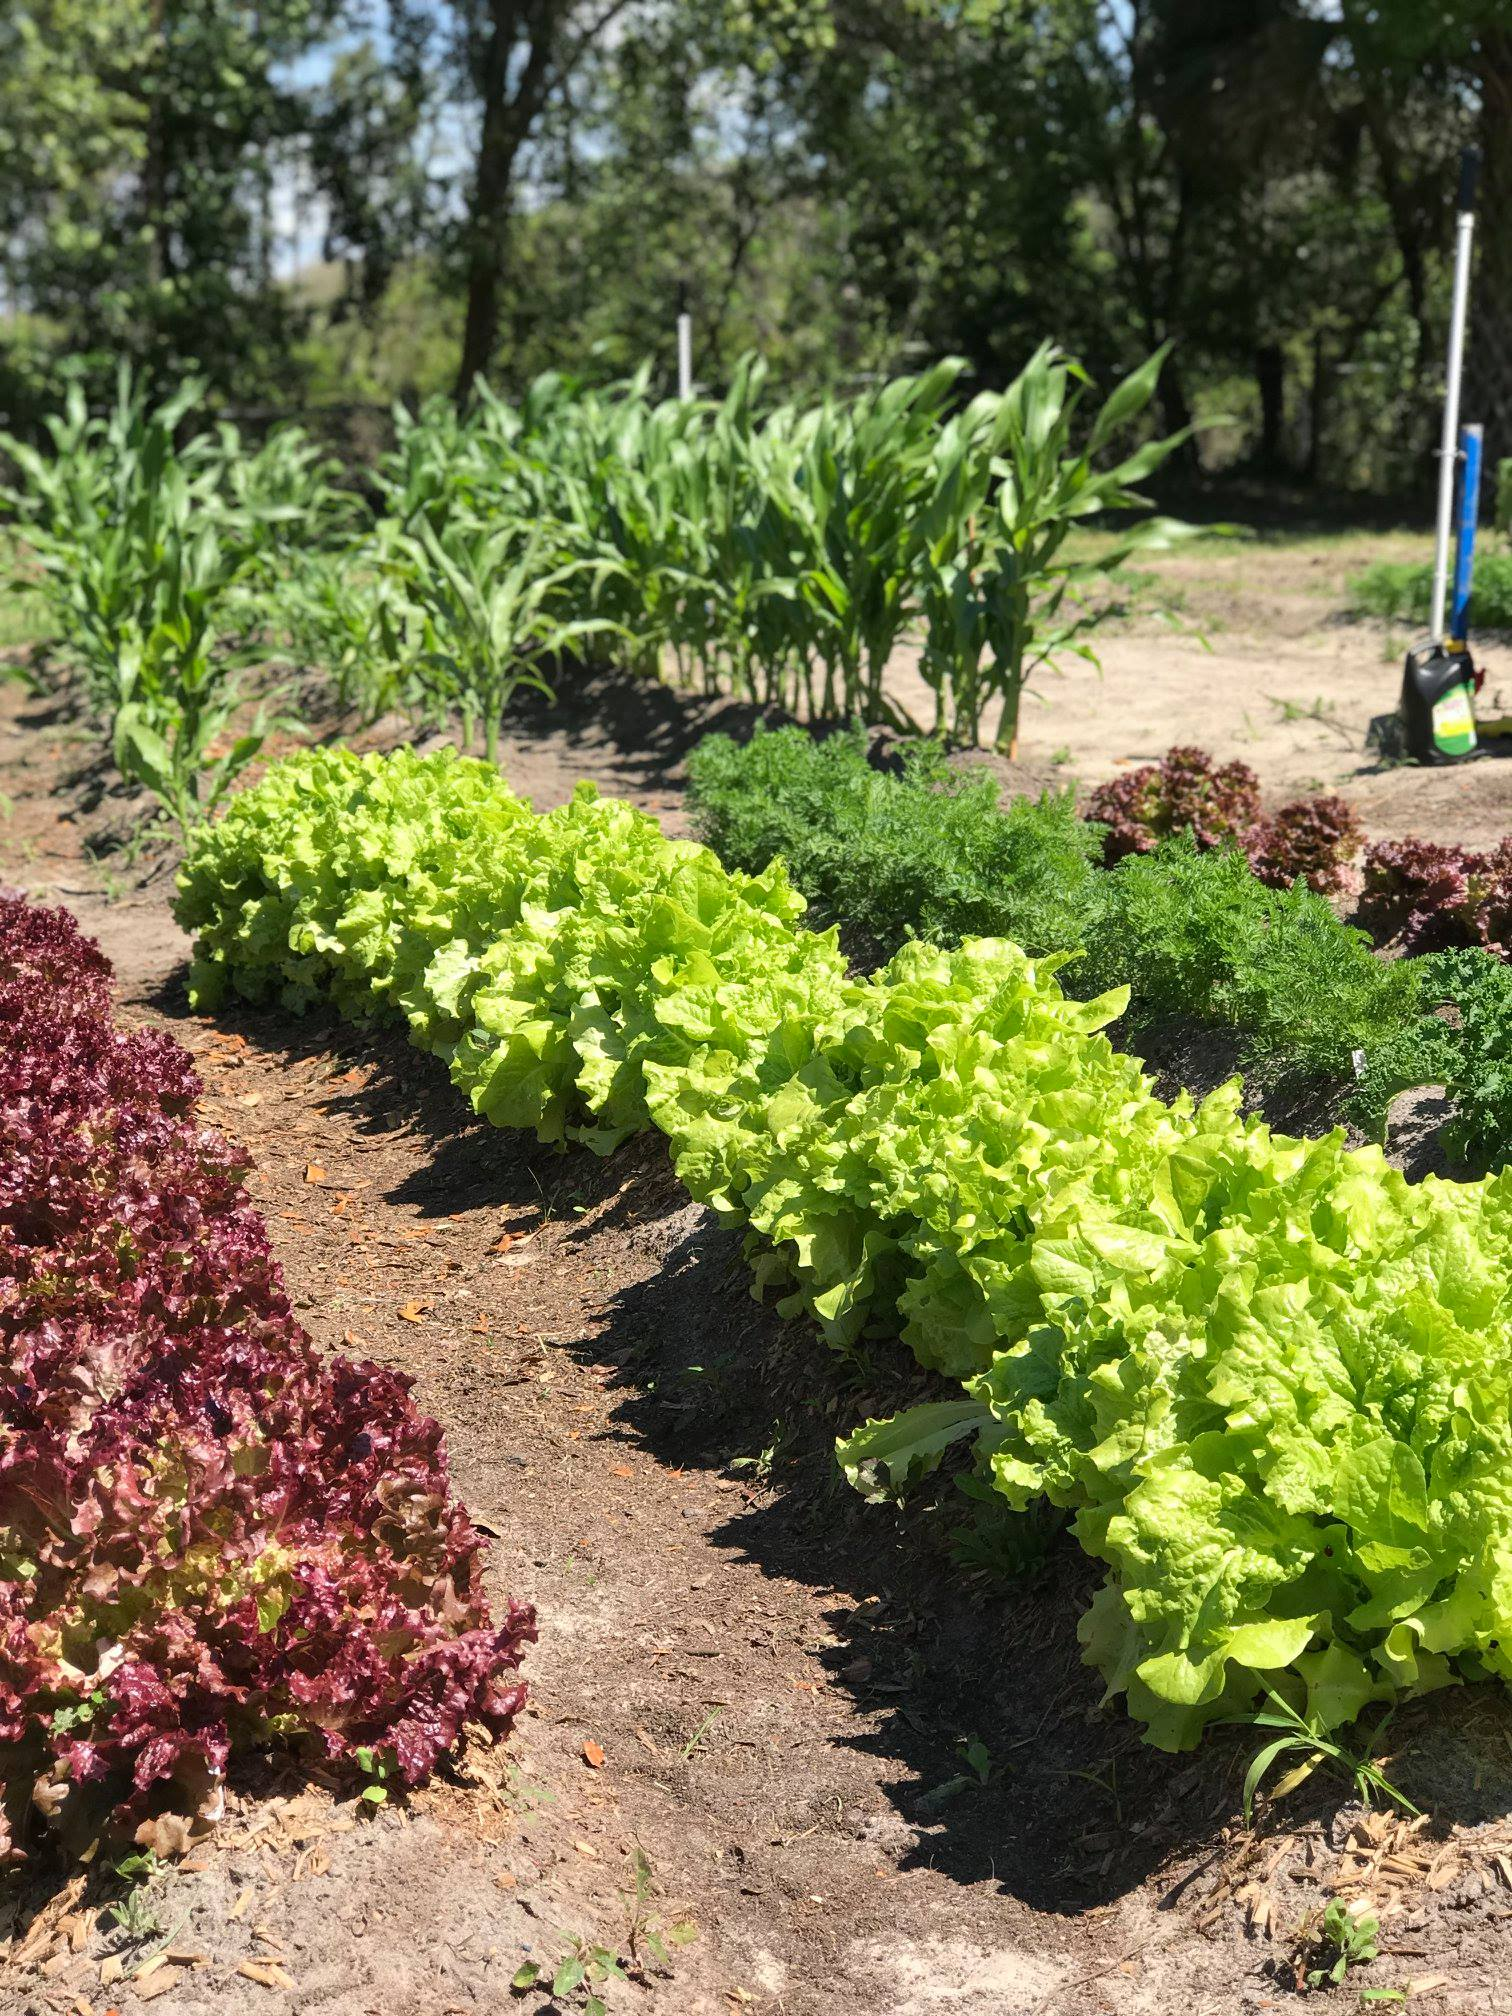 Lettuce Rows in the Garden